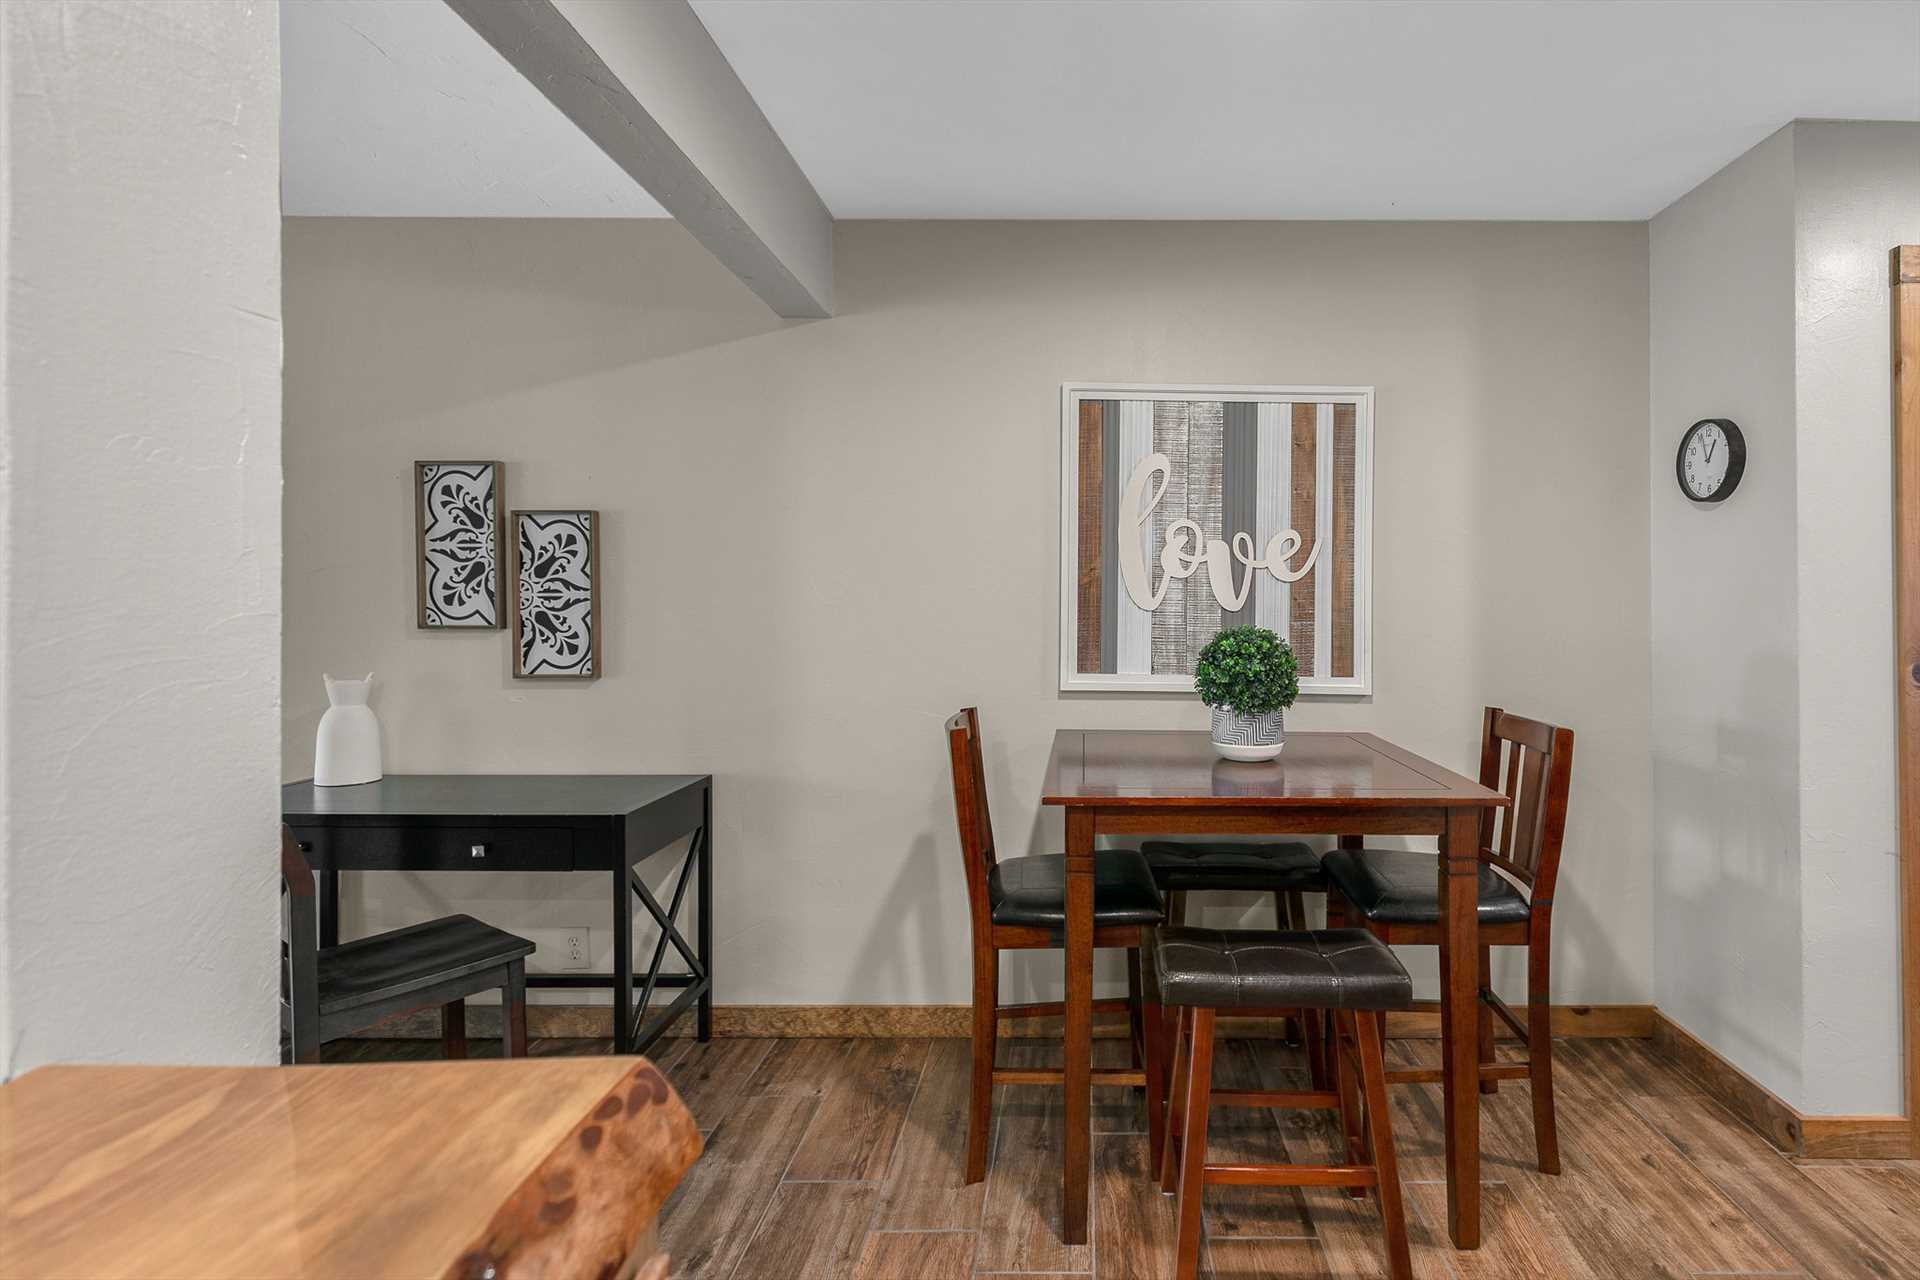 This condo is bright and open with updated furnishings.